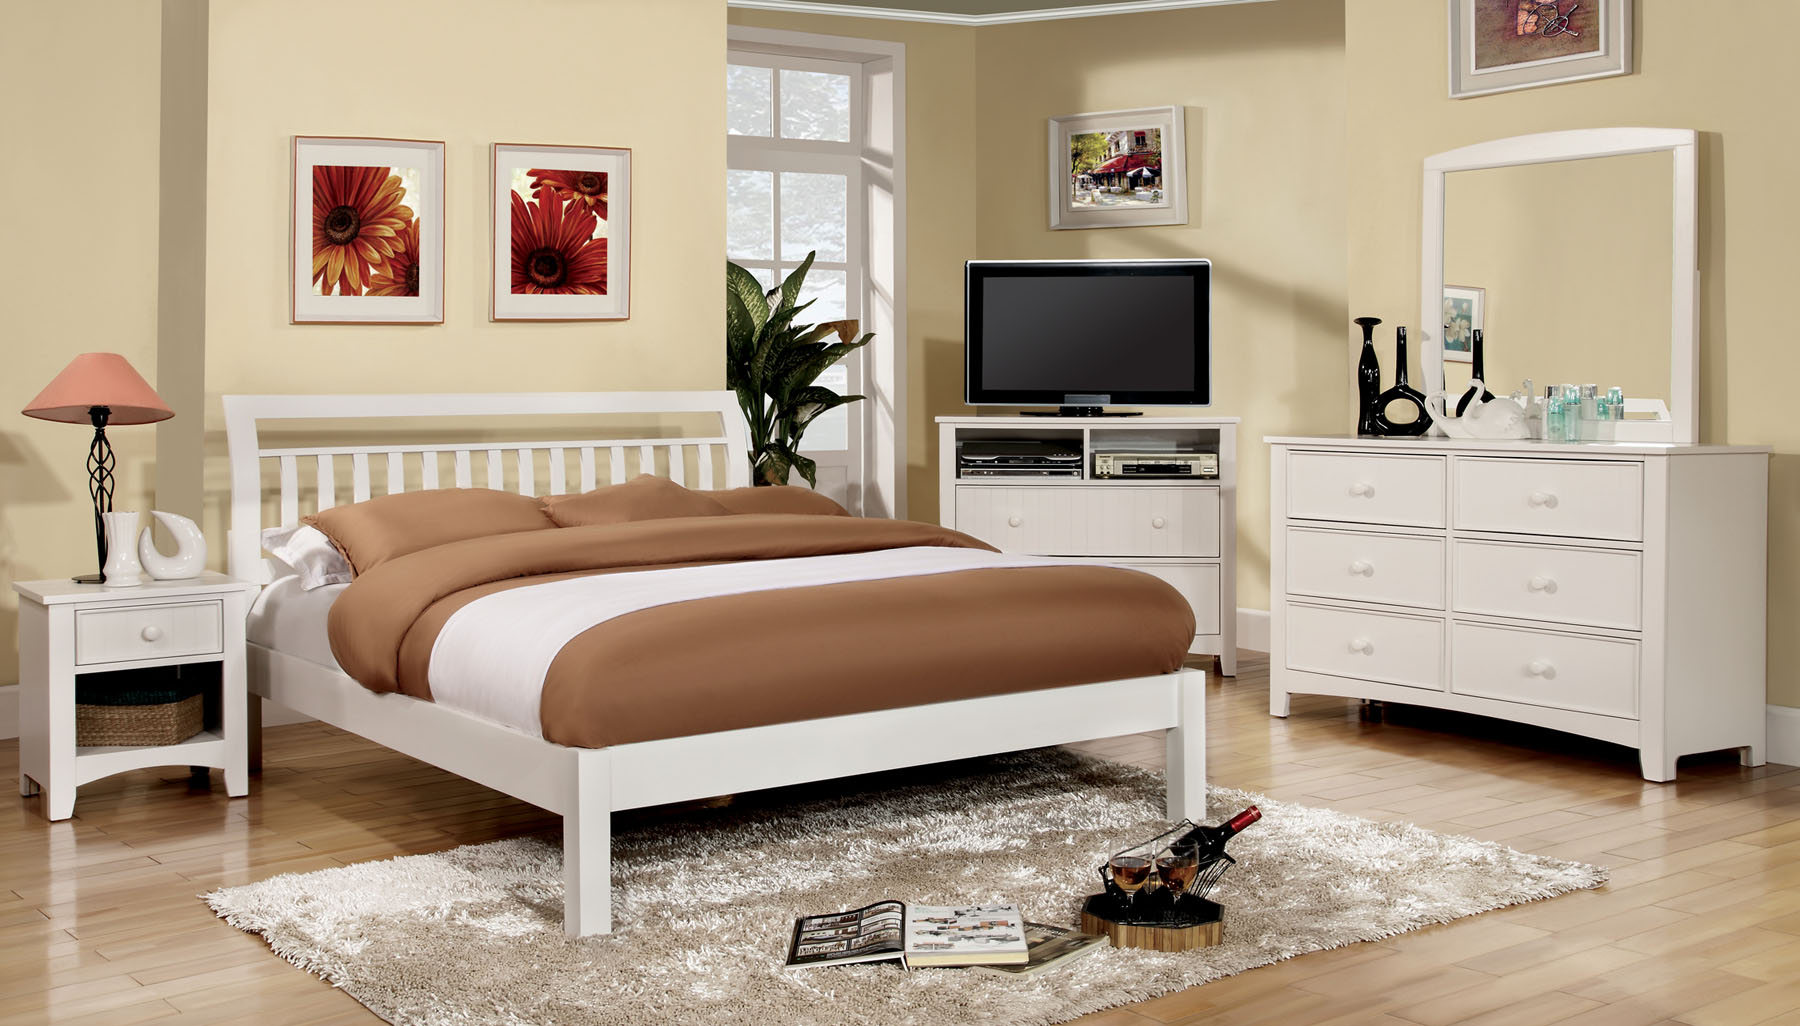 Corry CM7923WH 4pc Bedroom Set     Furniture Mattress Los Angeles and     Corry CM7923WH 4pc Bedroom Set